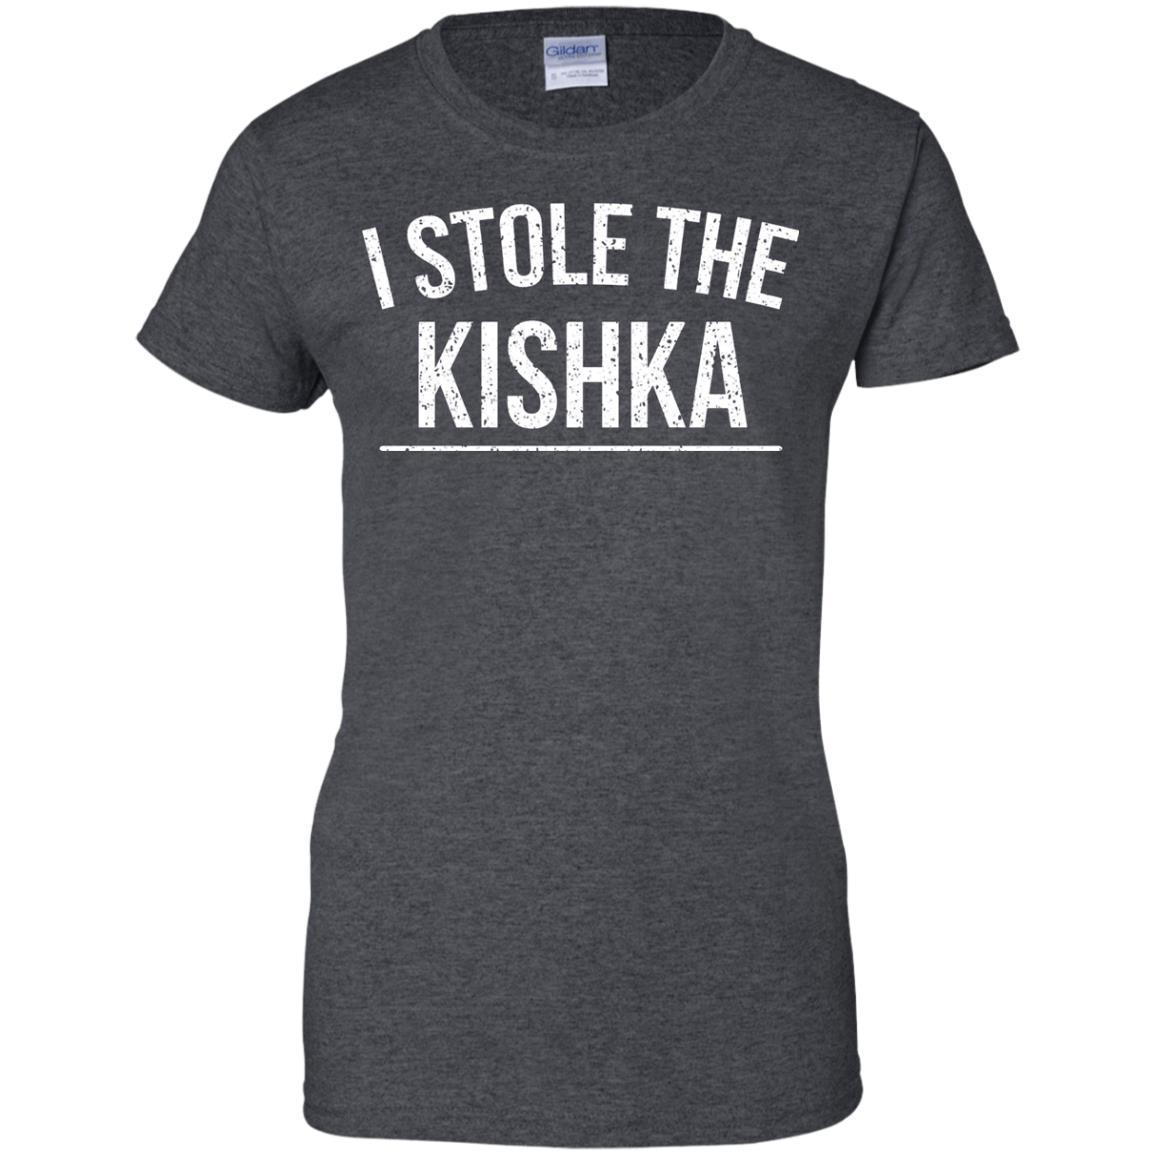 I stole the Kishka t shirts for men